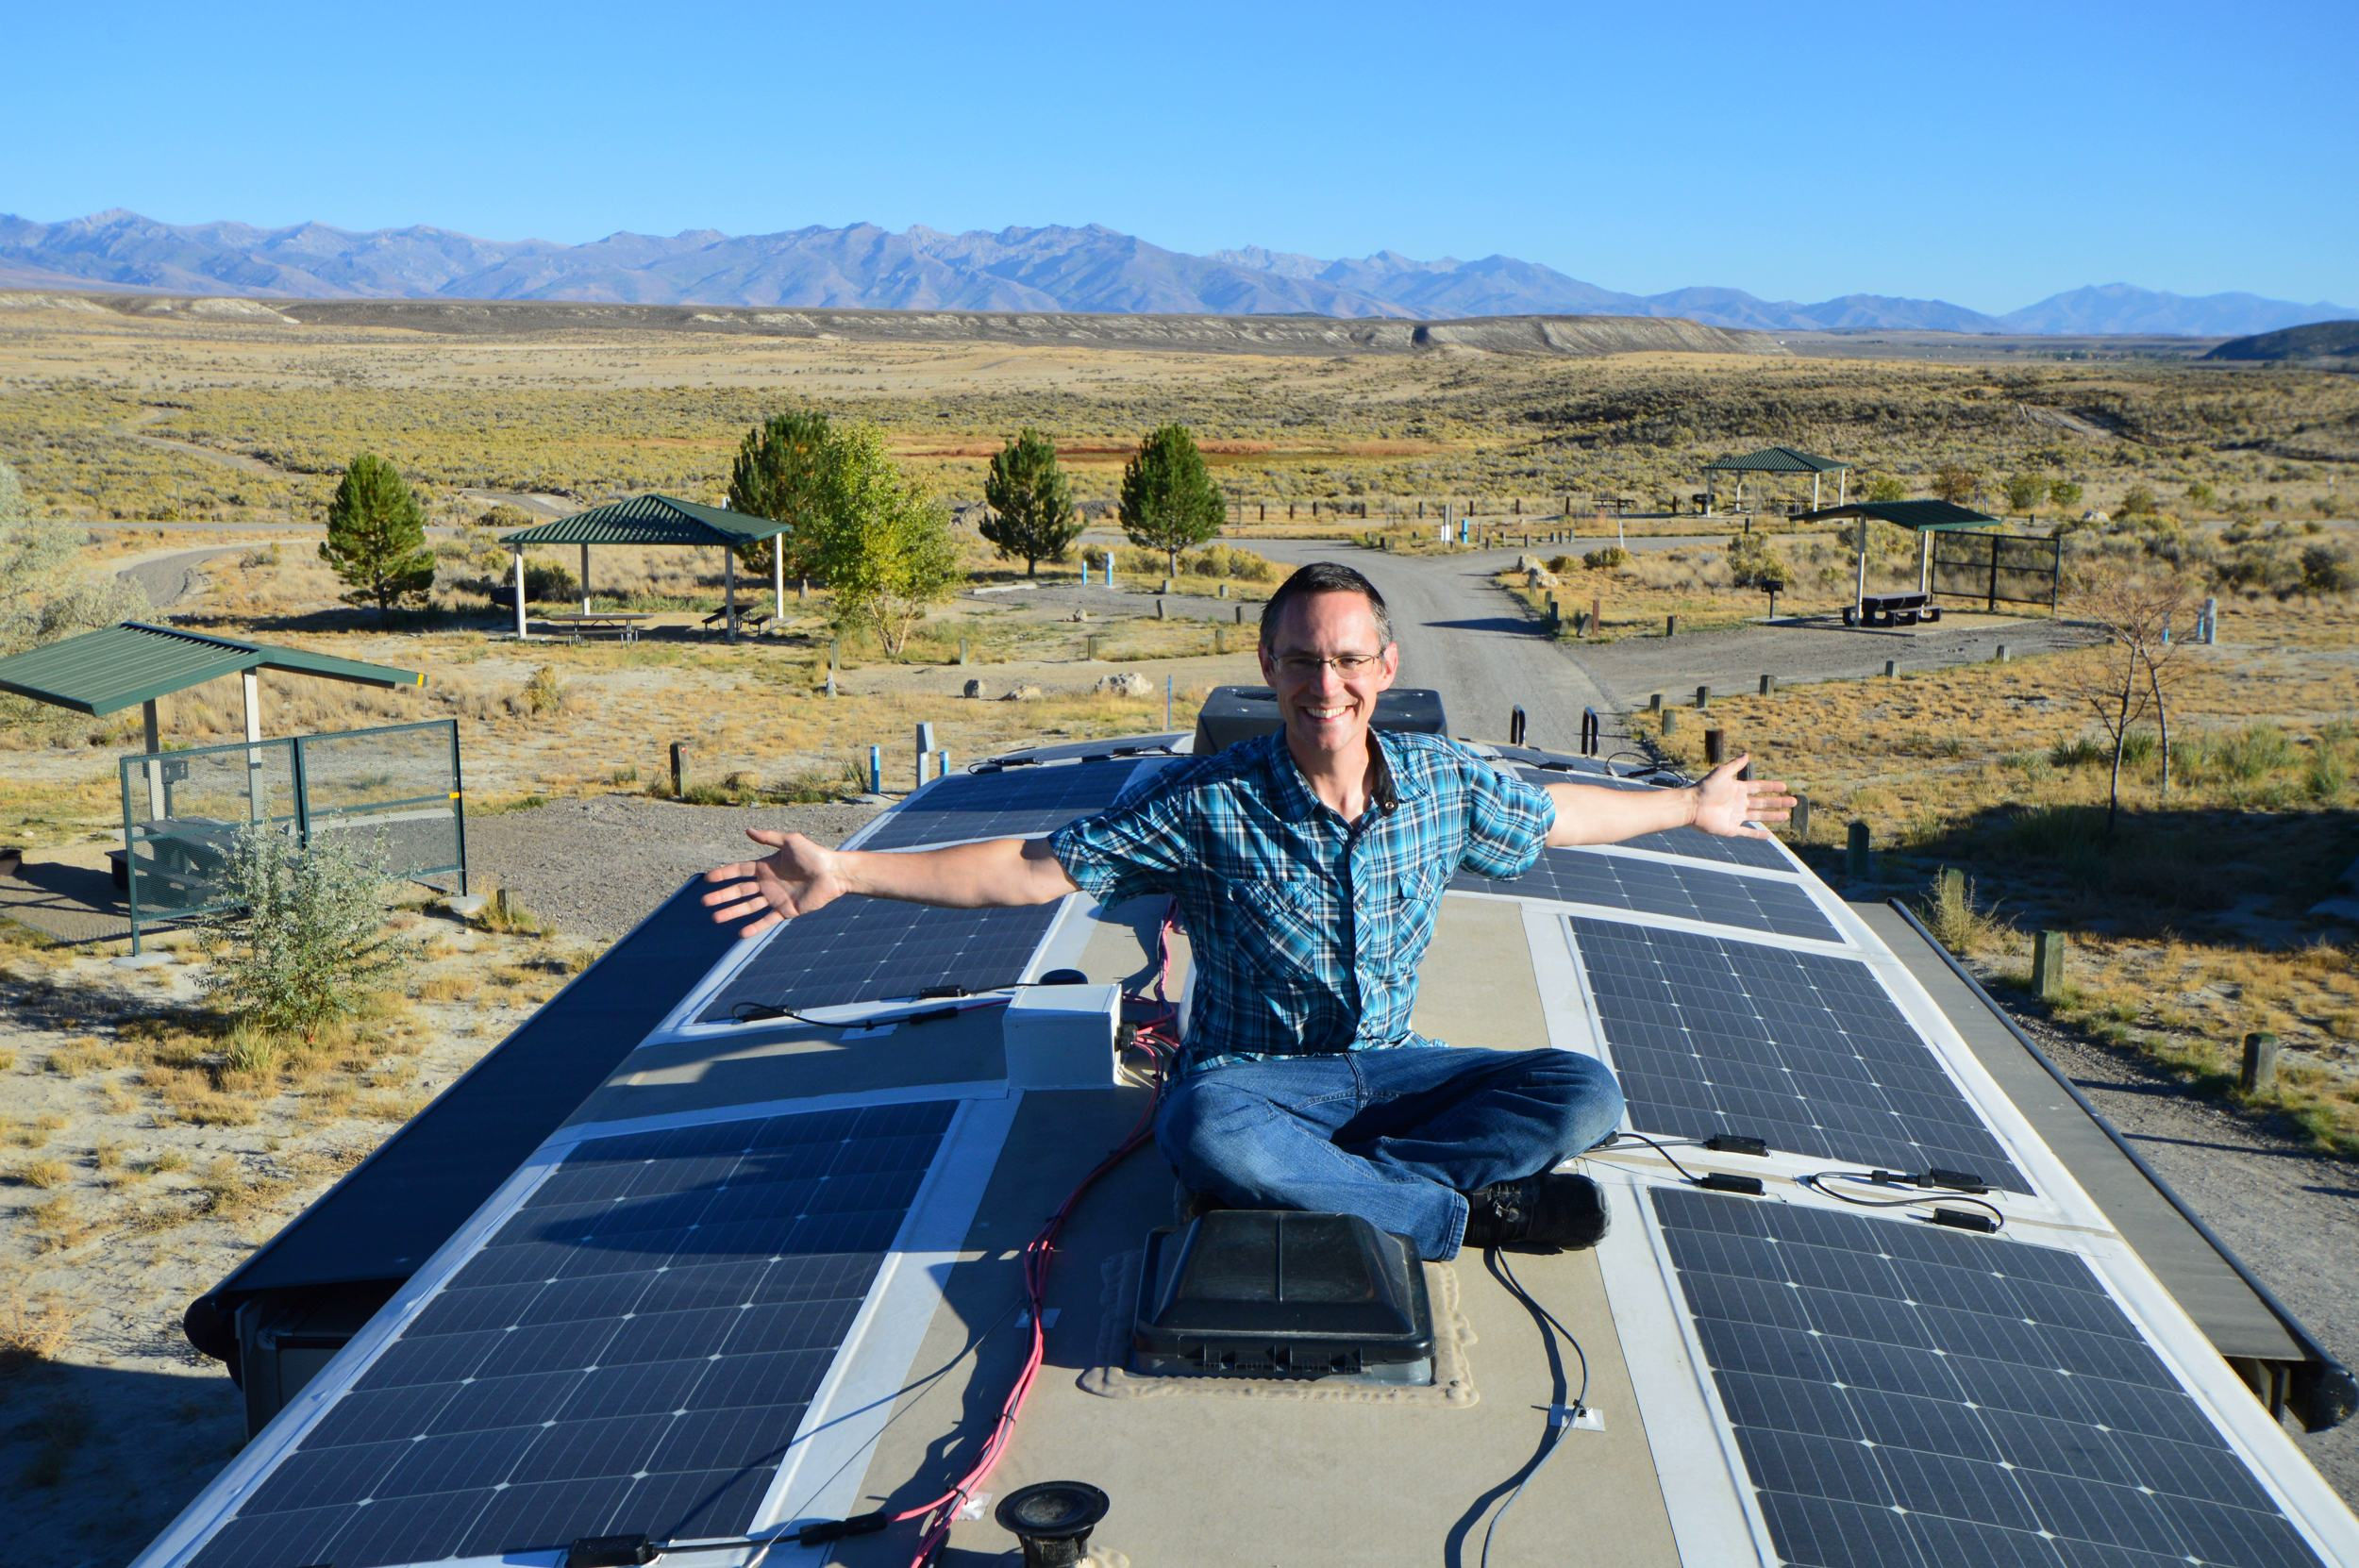 Man sitting on RV roof covered in solar panels